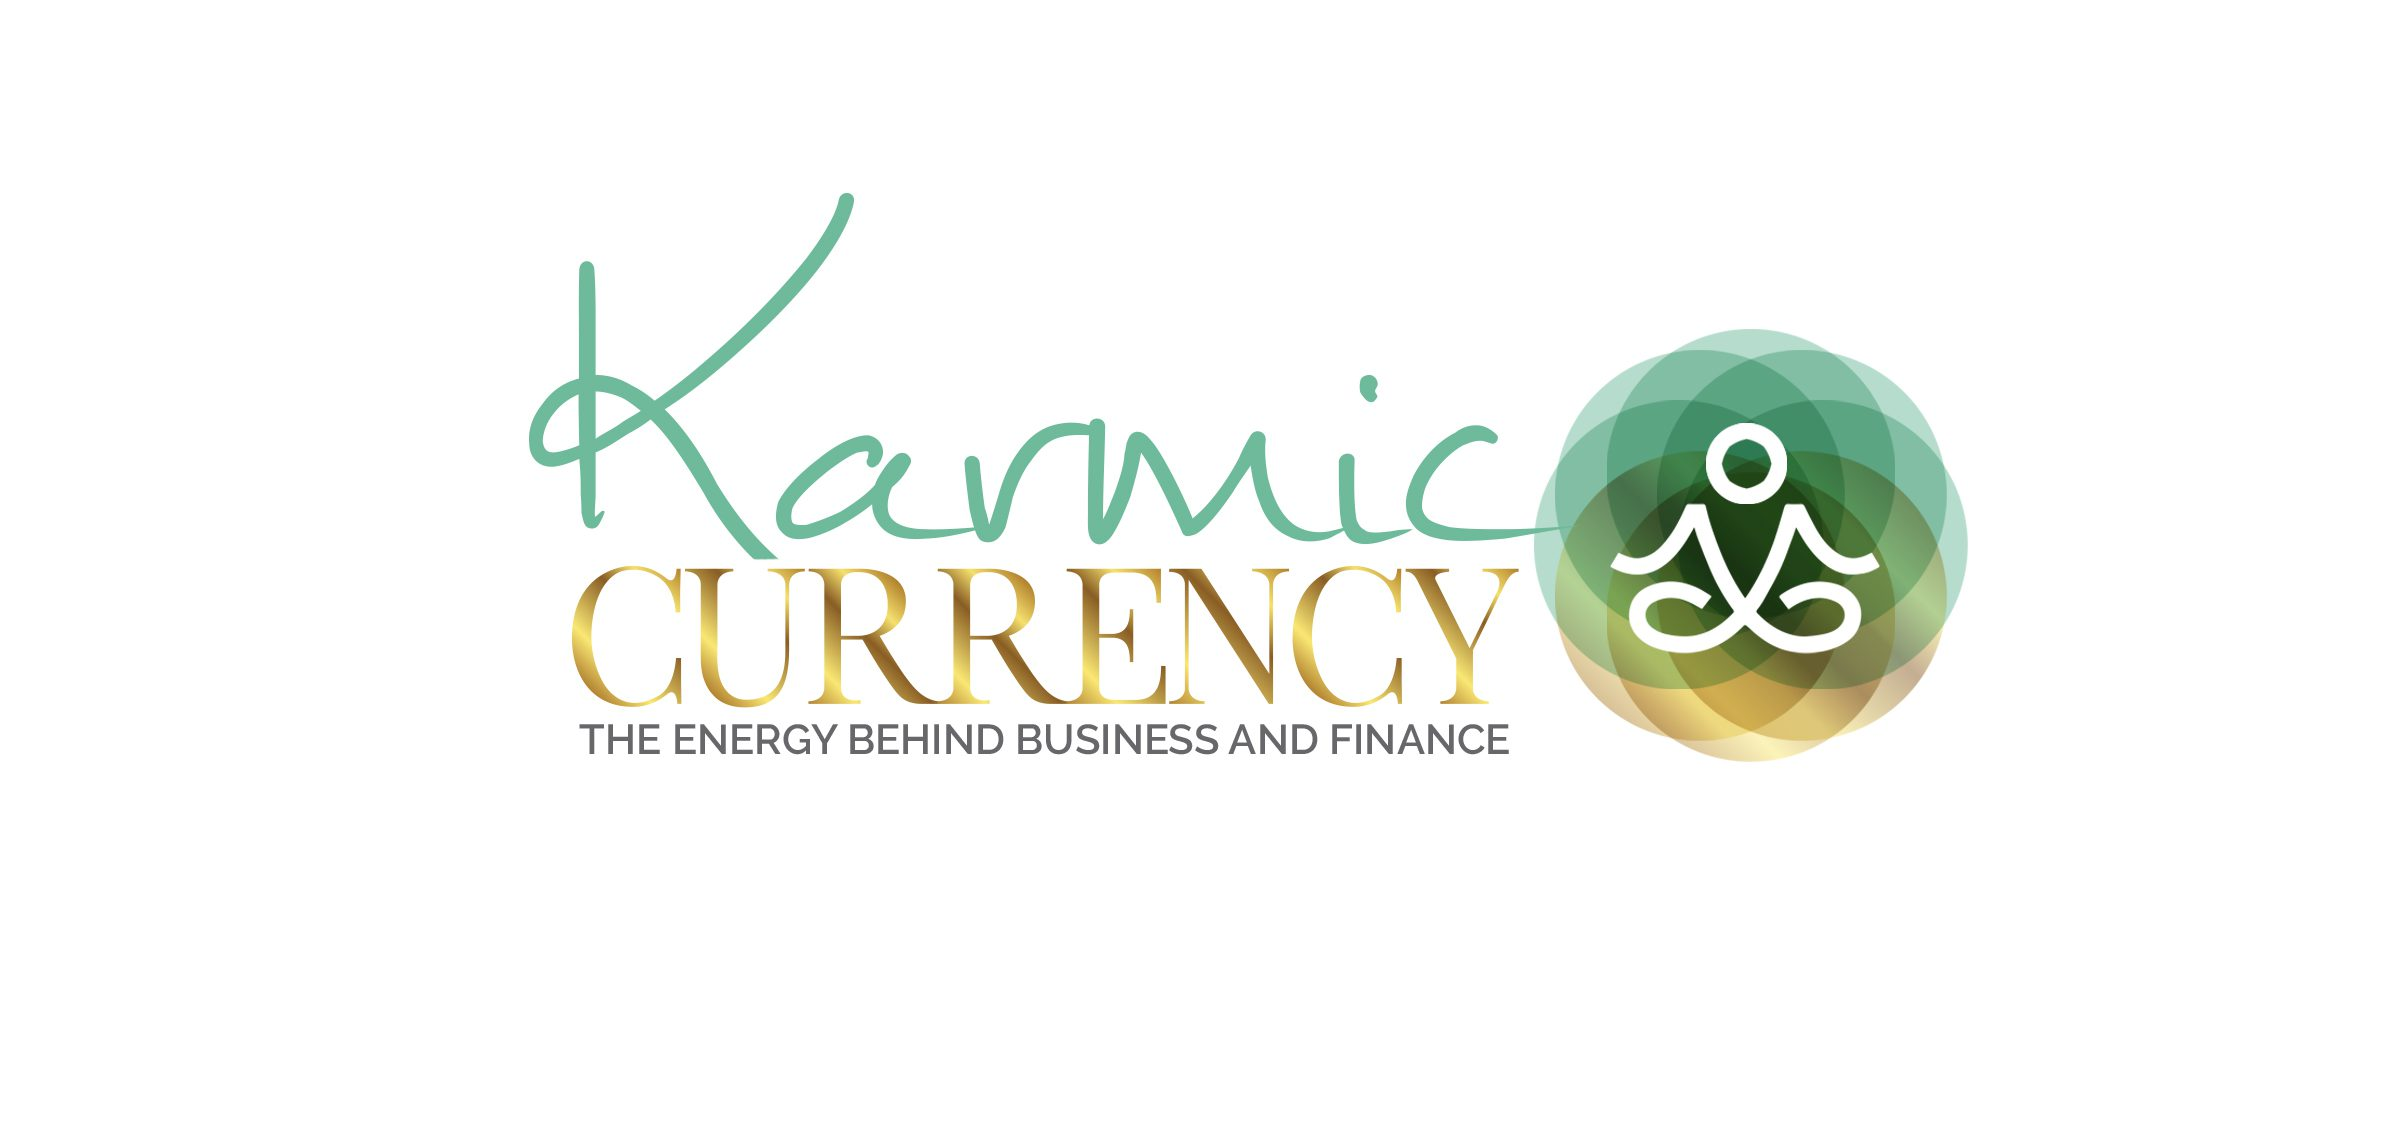 Karmic Currency